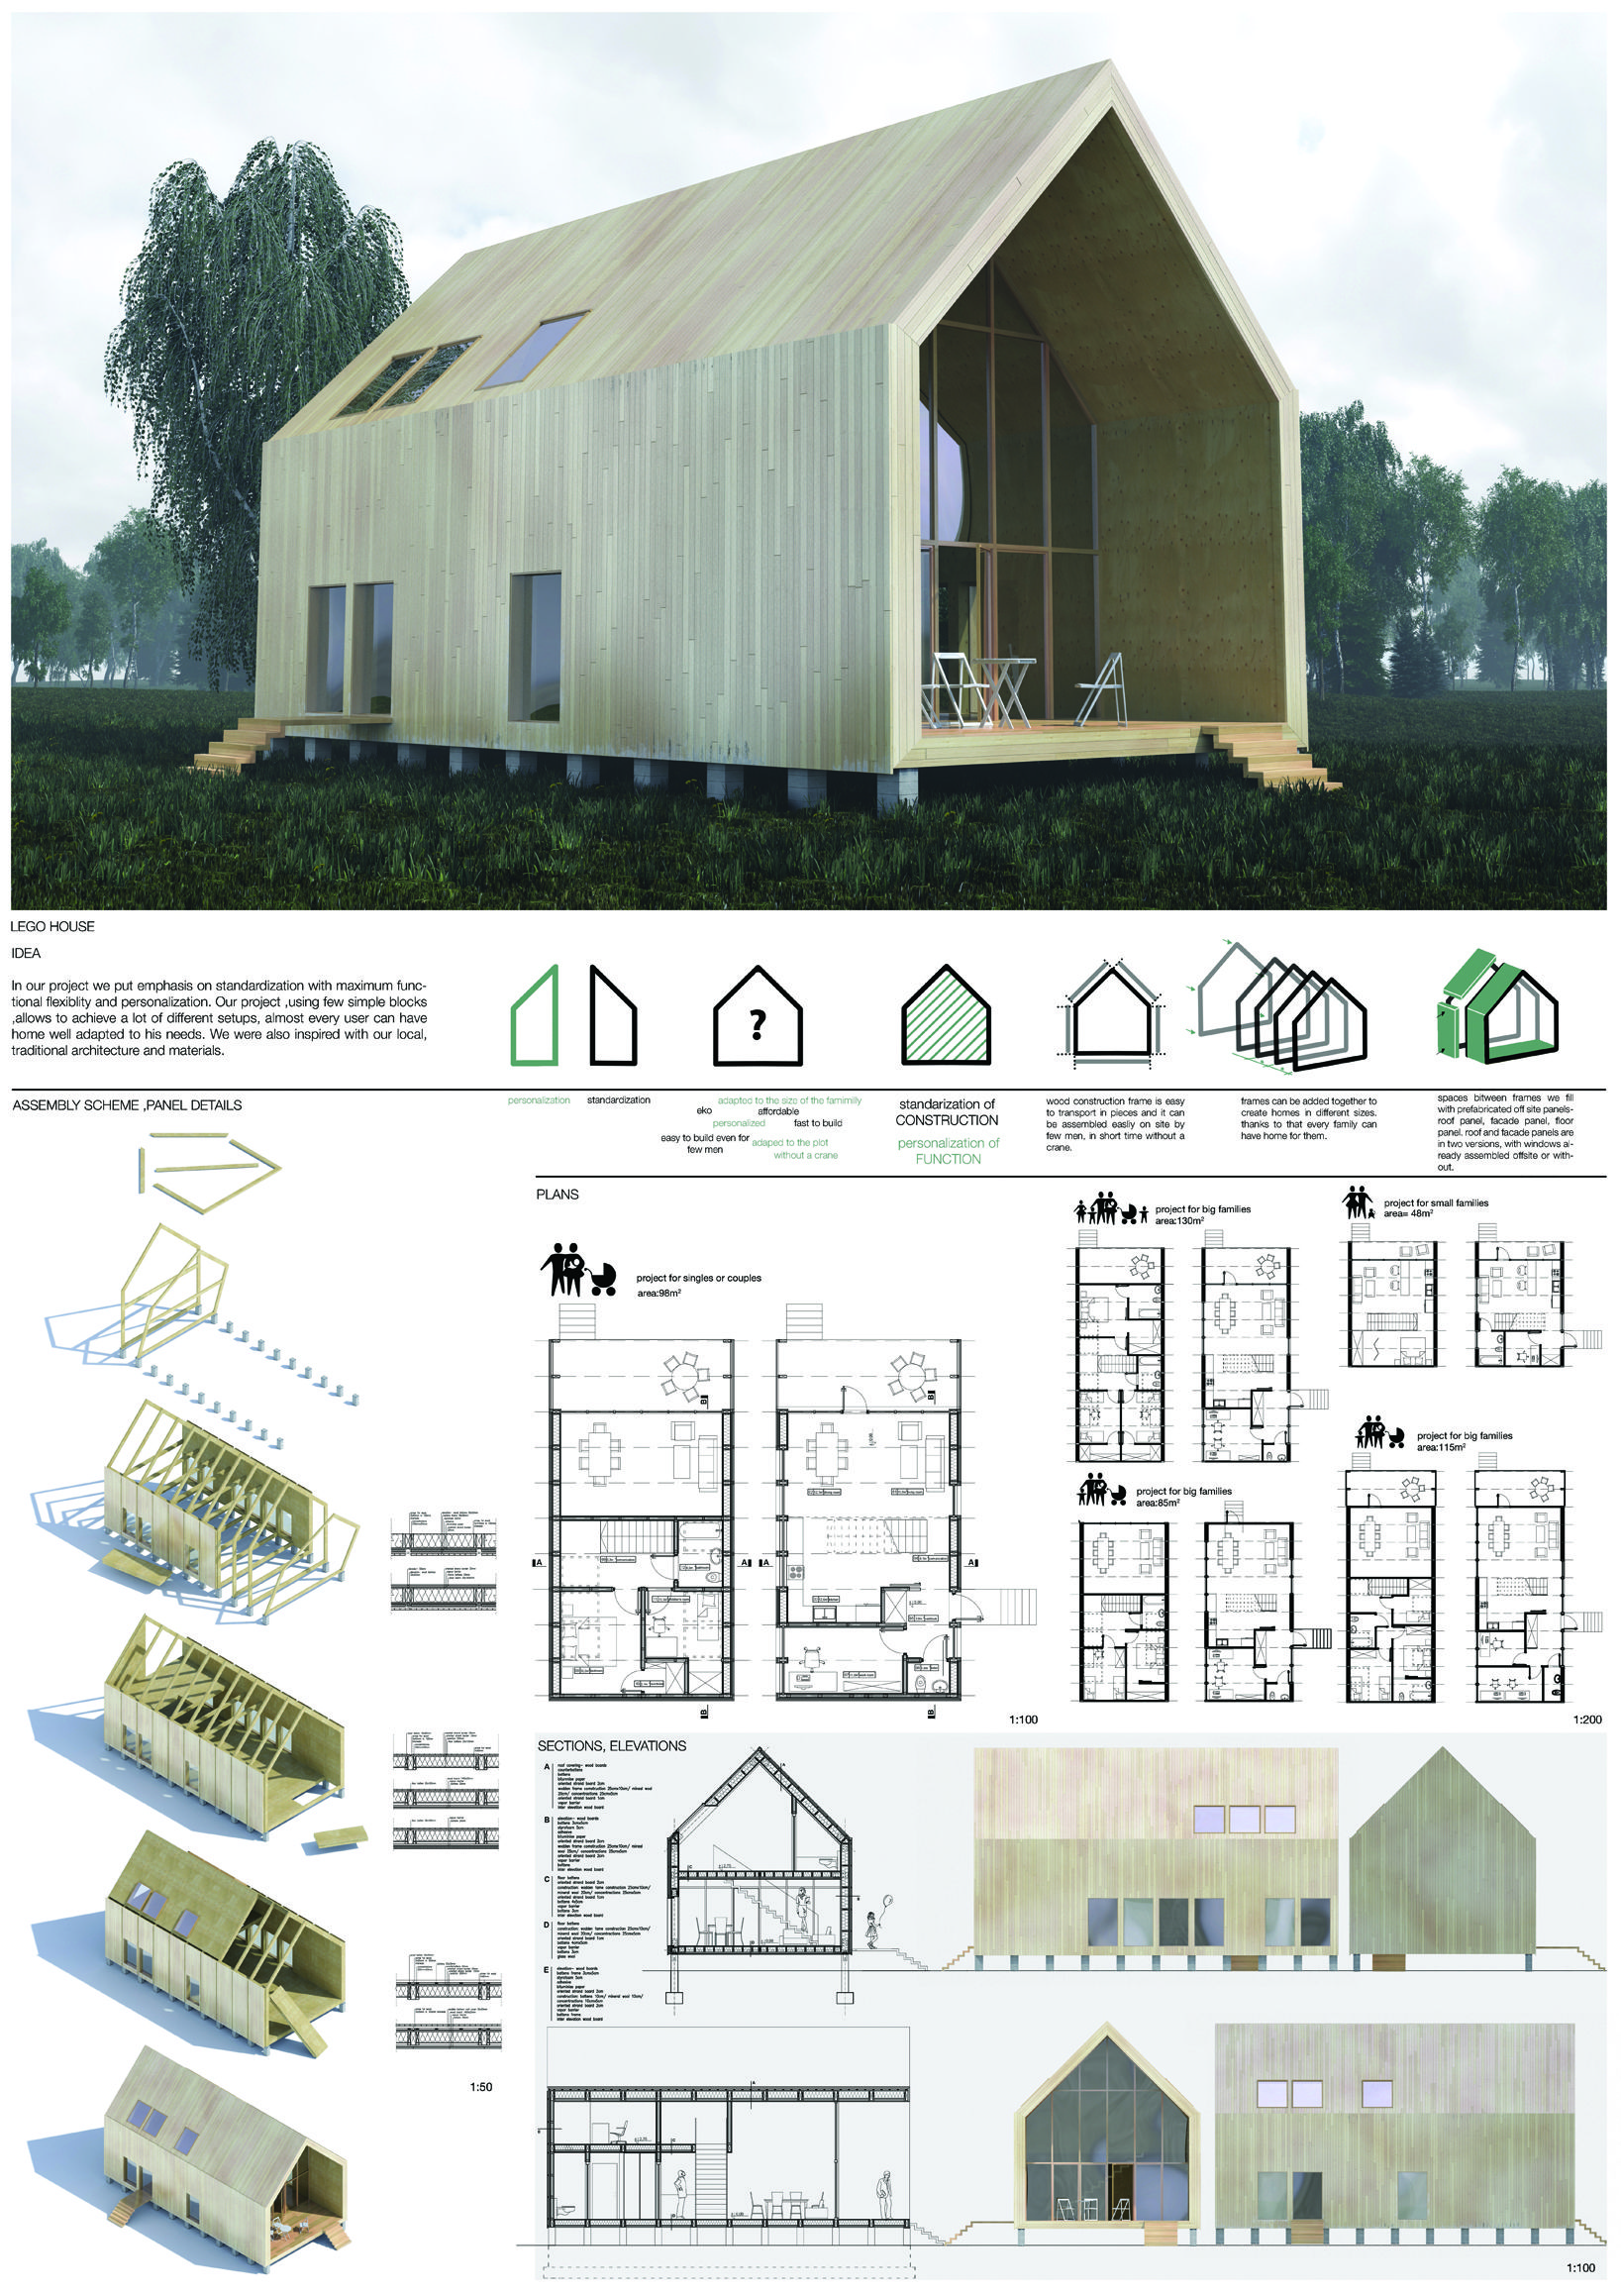 10 Confident Tips And Tricks Grey Roofing Shingles Black Roofing Architecture Roofing Garden Minimalista Ro Roof Structure Roof Construction Roof Architecture